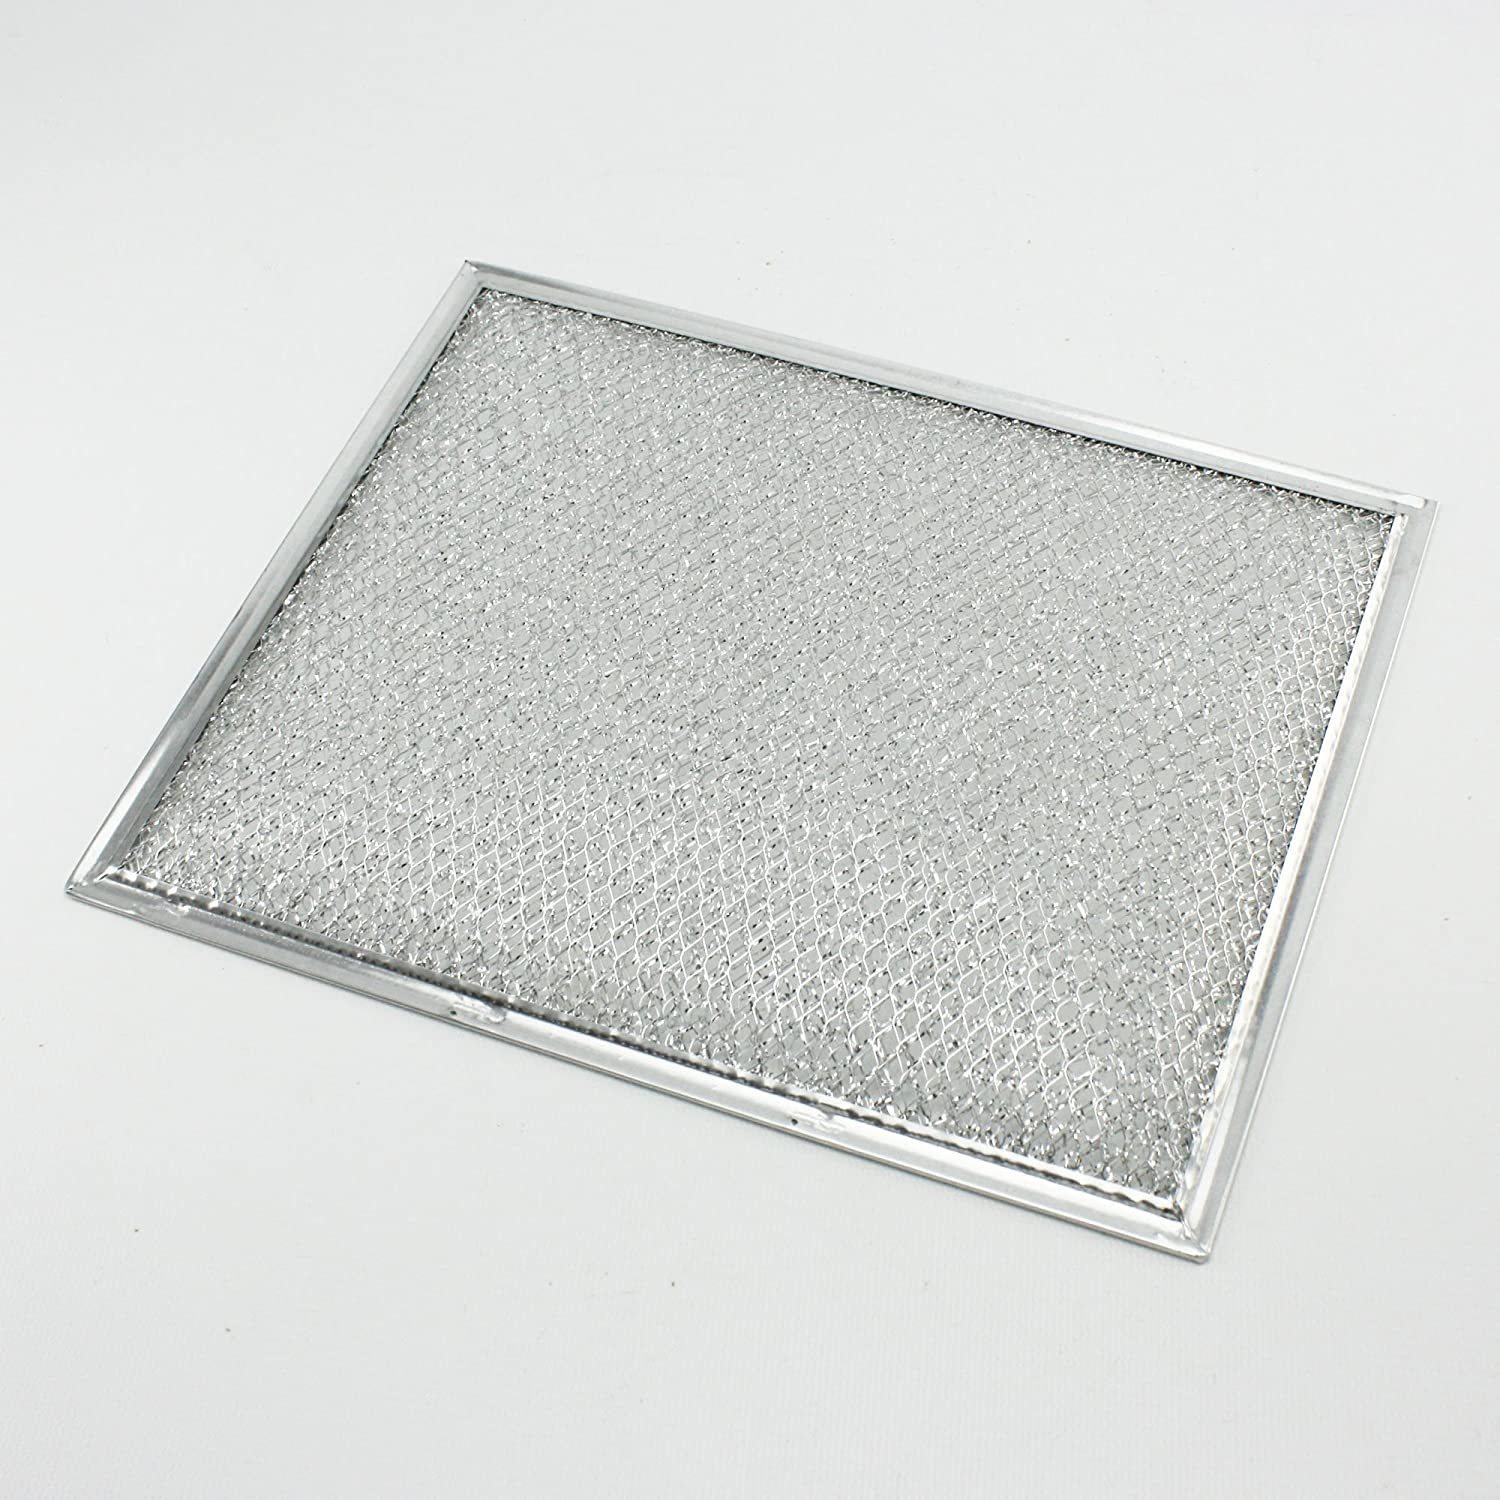 nutone aluminum hood vent filter sports